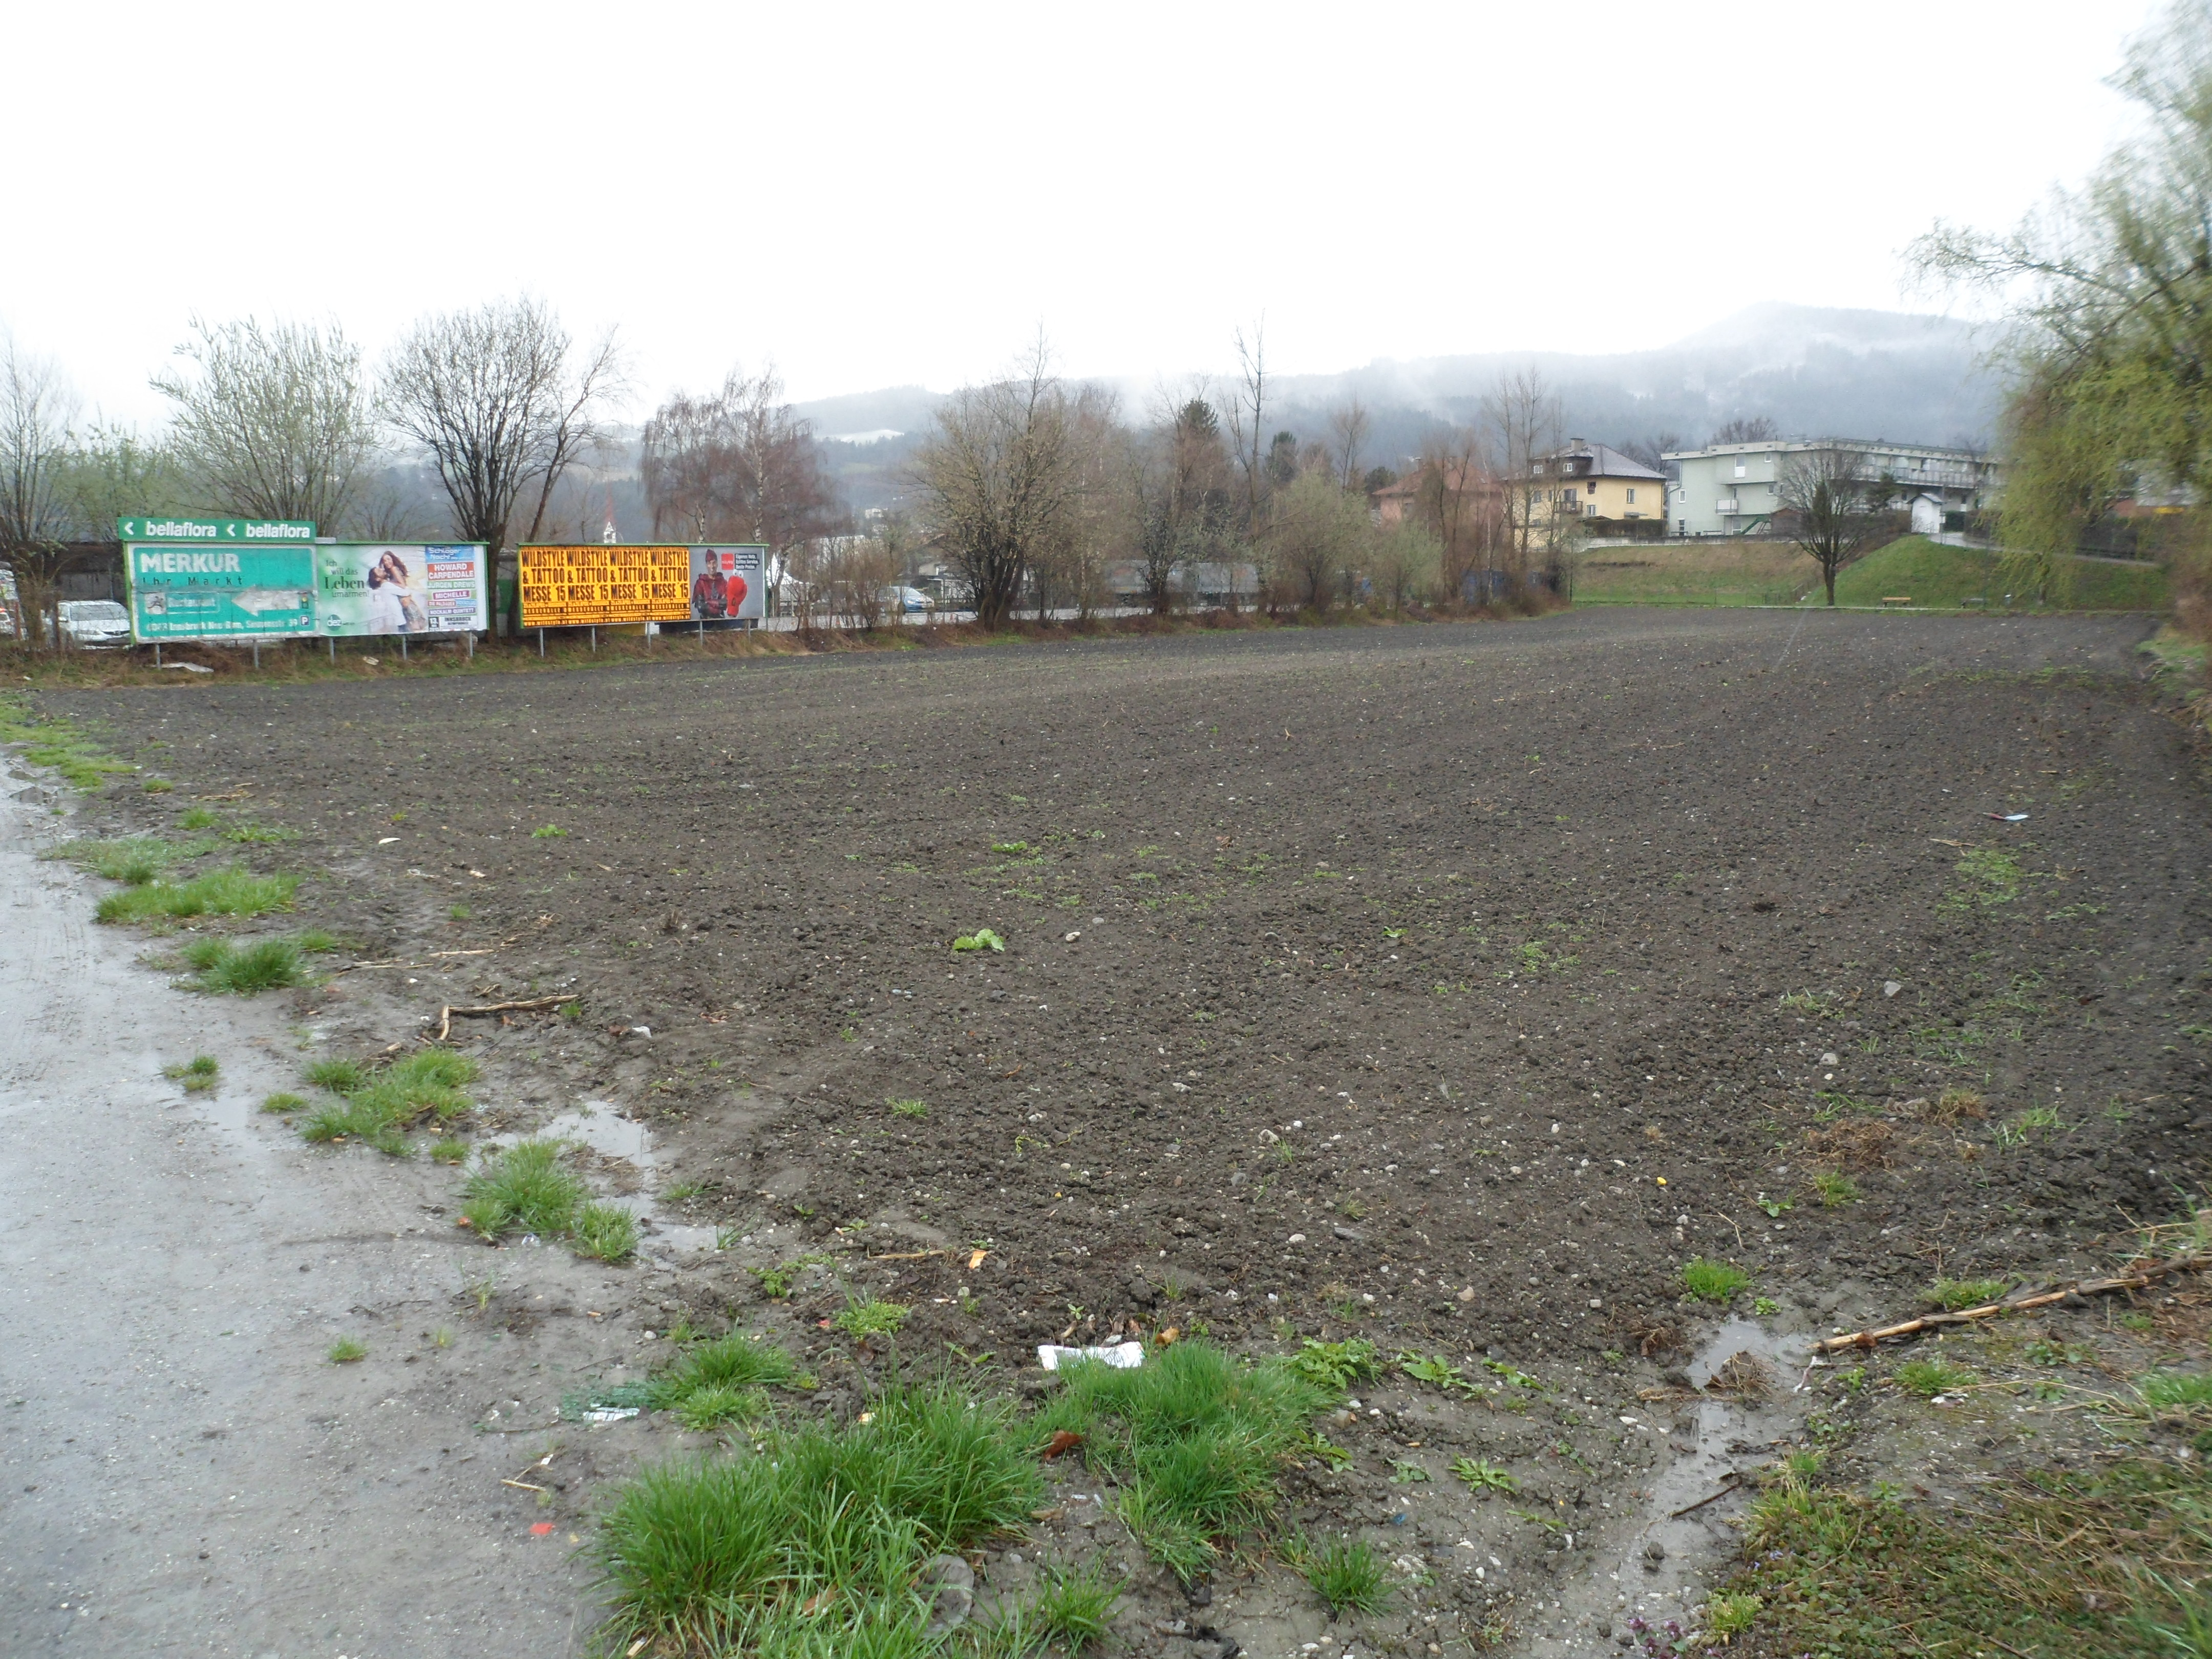 A muddy, freshly plowed field with bare trees and a fence with billboards along one side